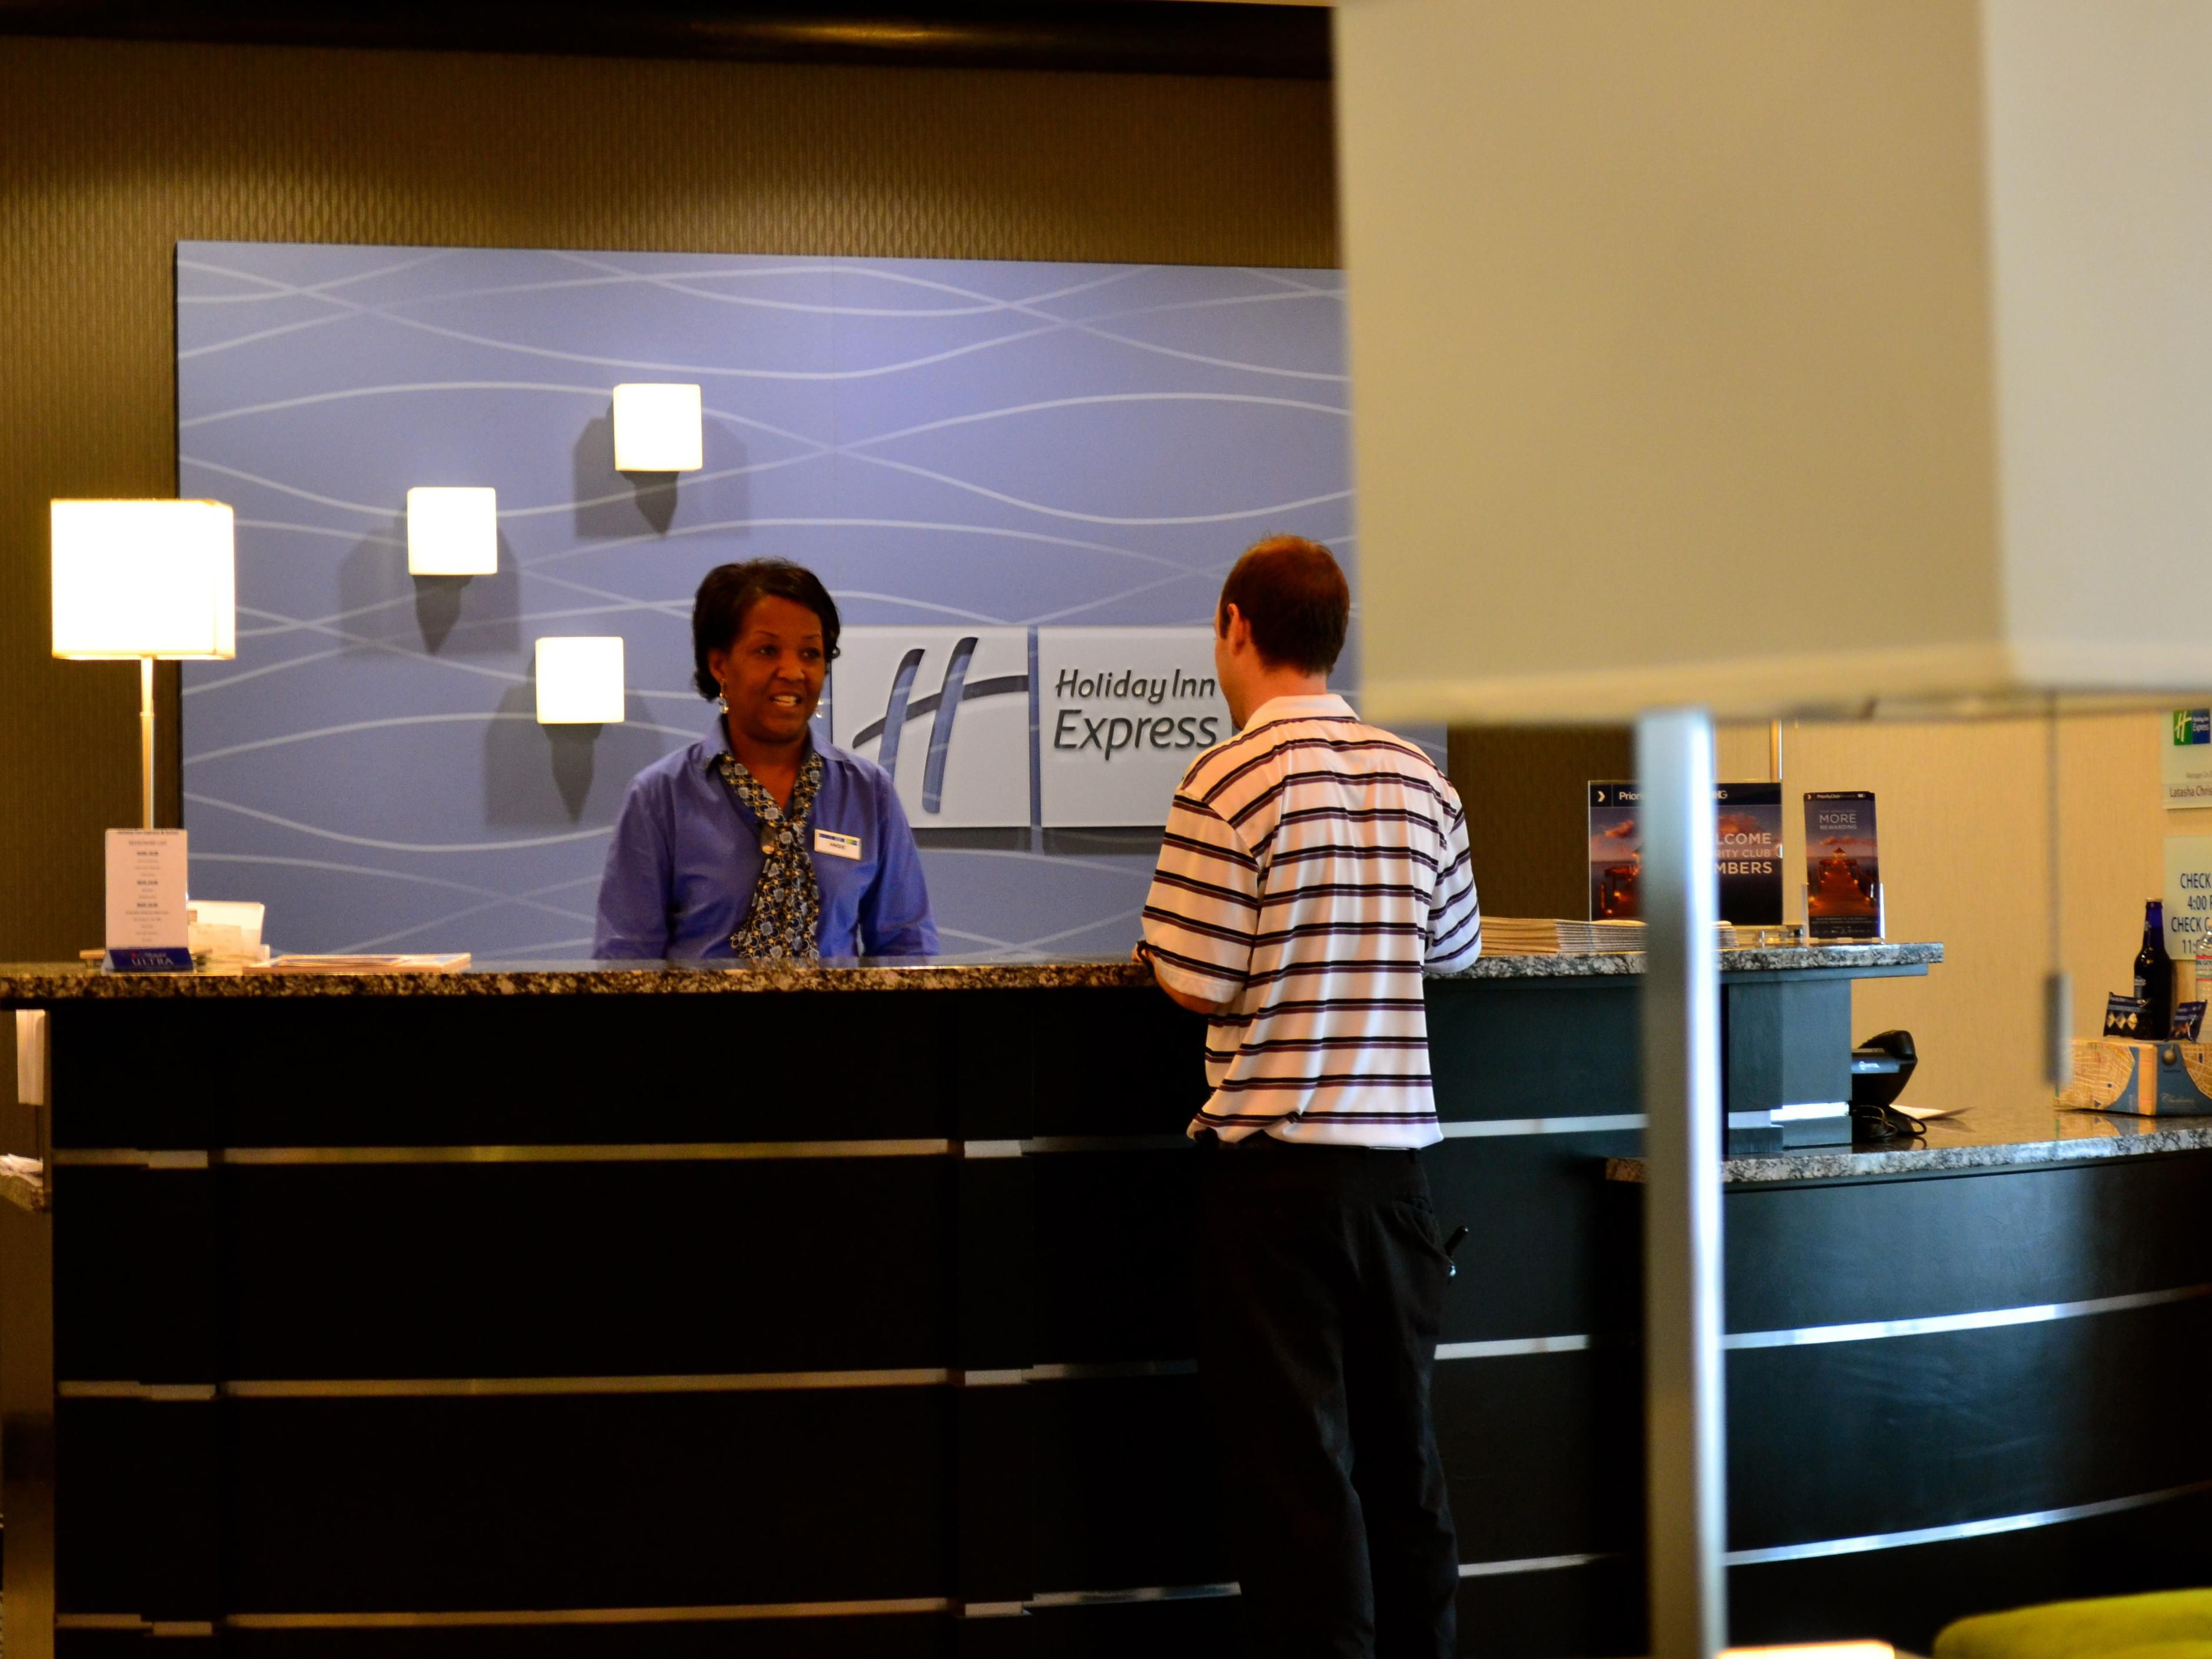 Our Front desk is able to accommodate you during your stay with us